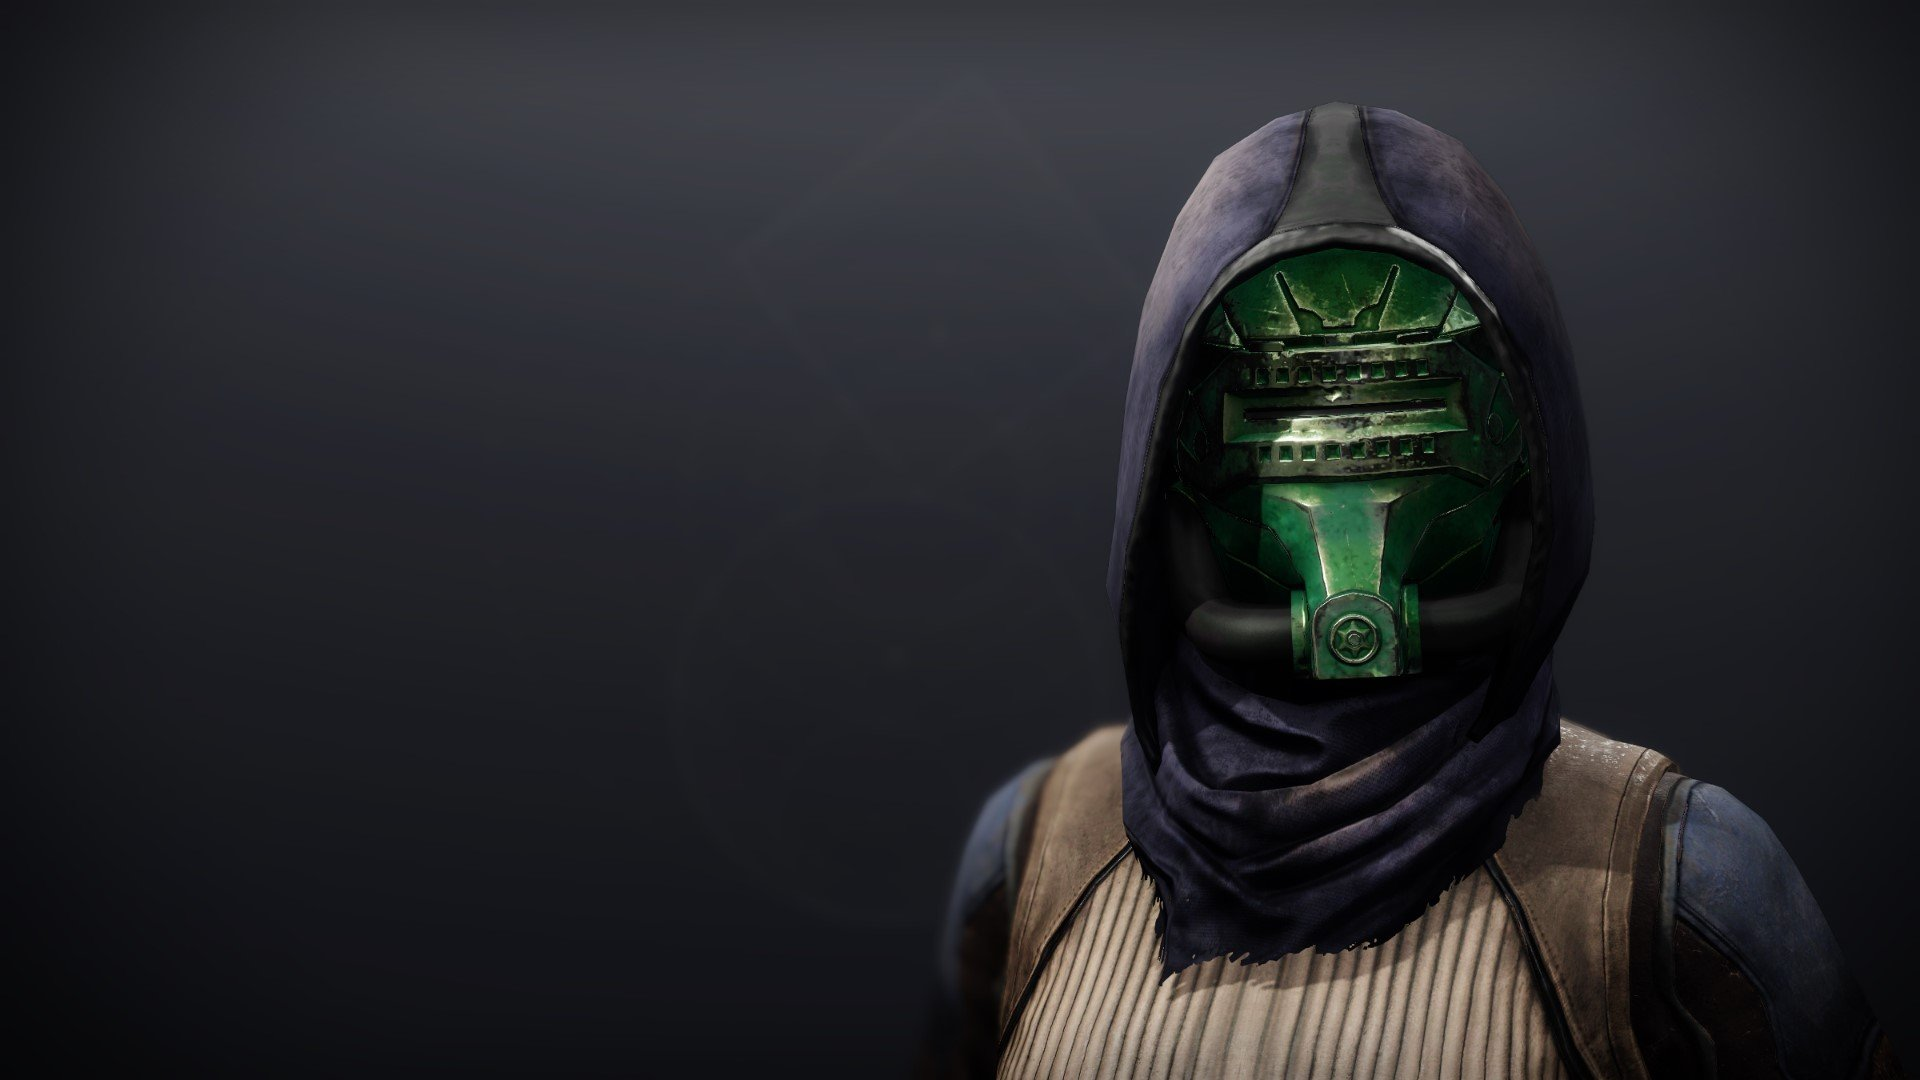 An in-game render of the Calamity Rig Mask.